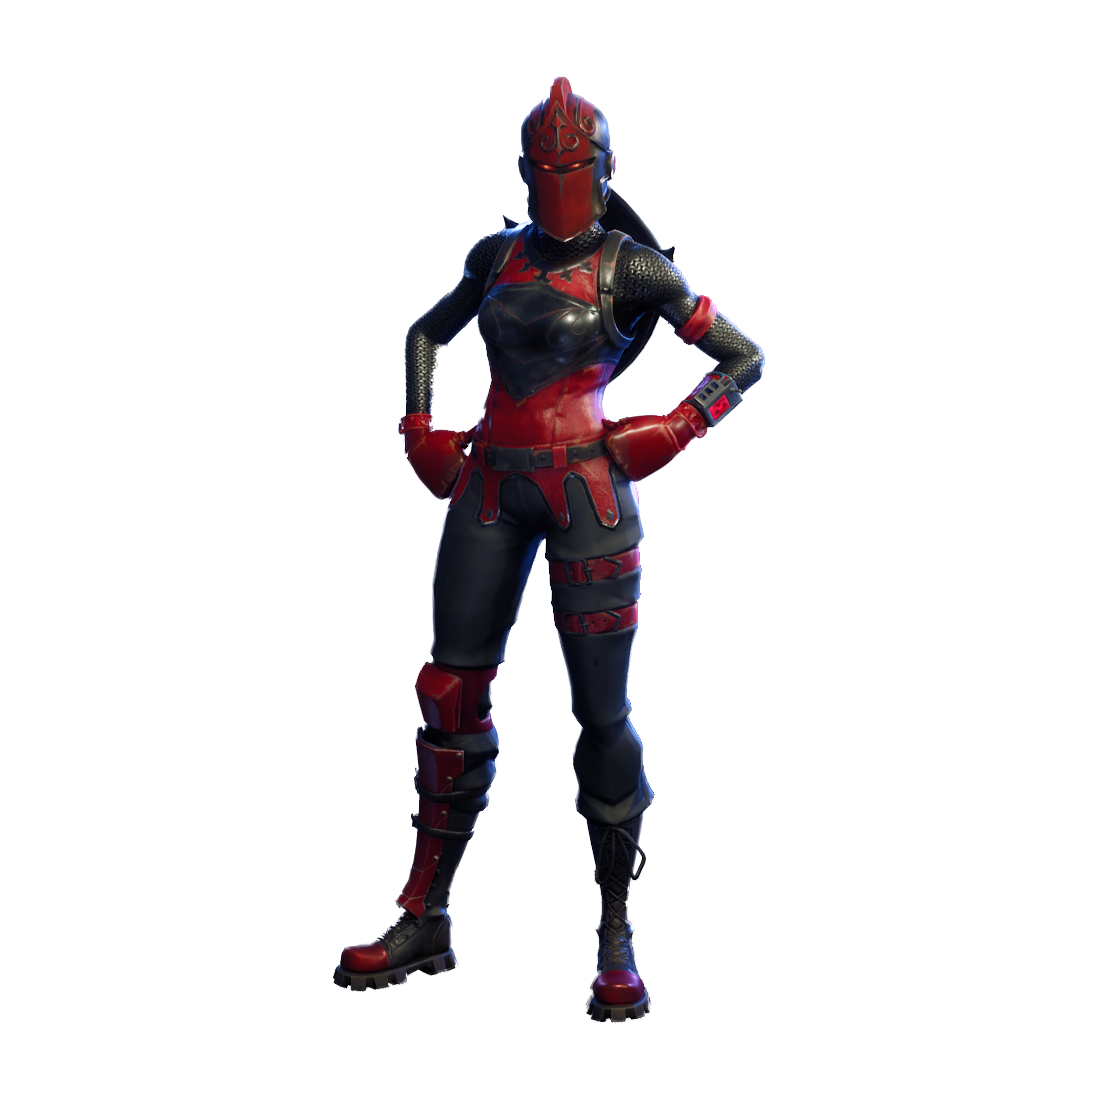 Red knight fortnite png. Stash browse all item